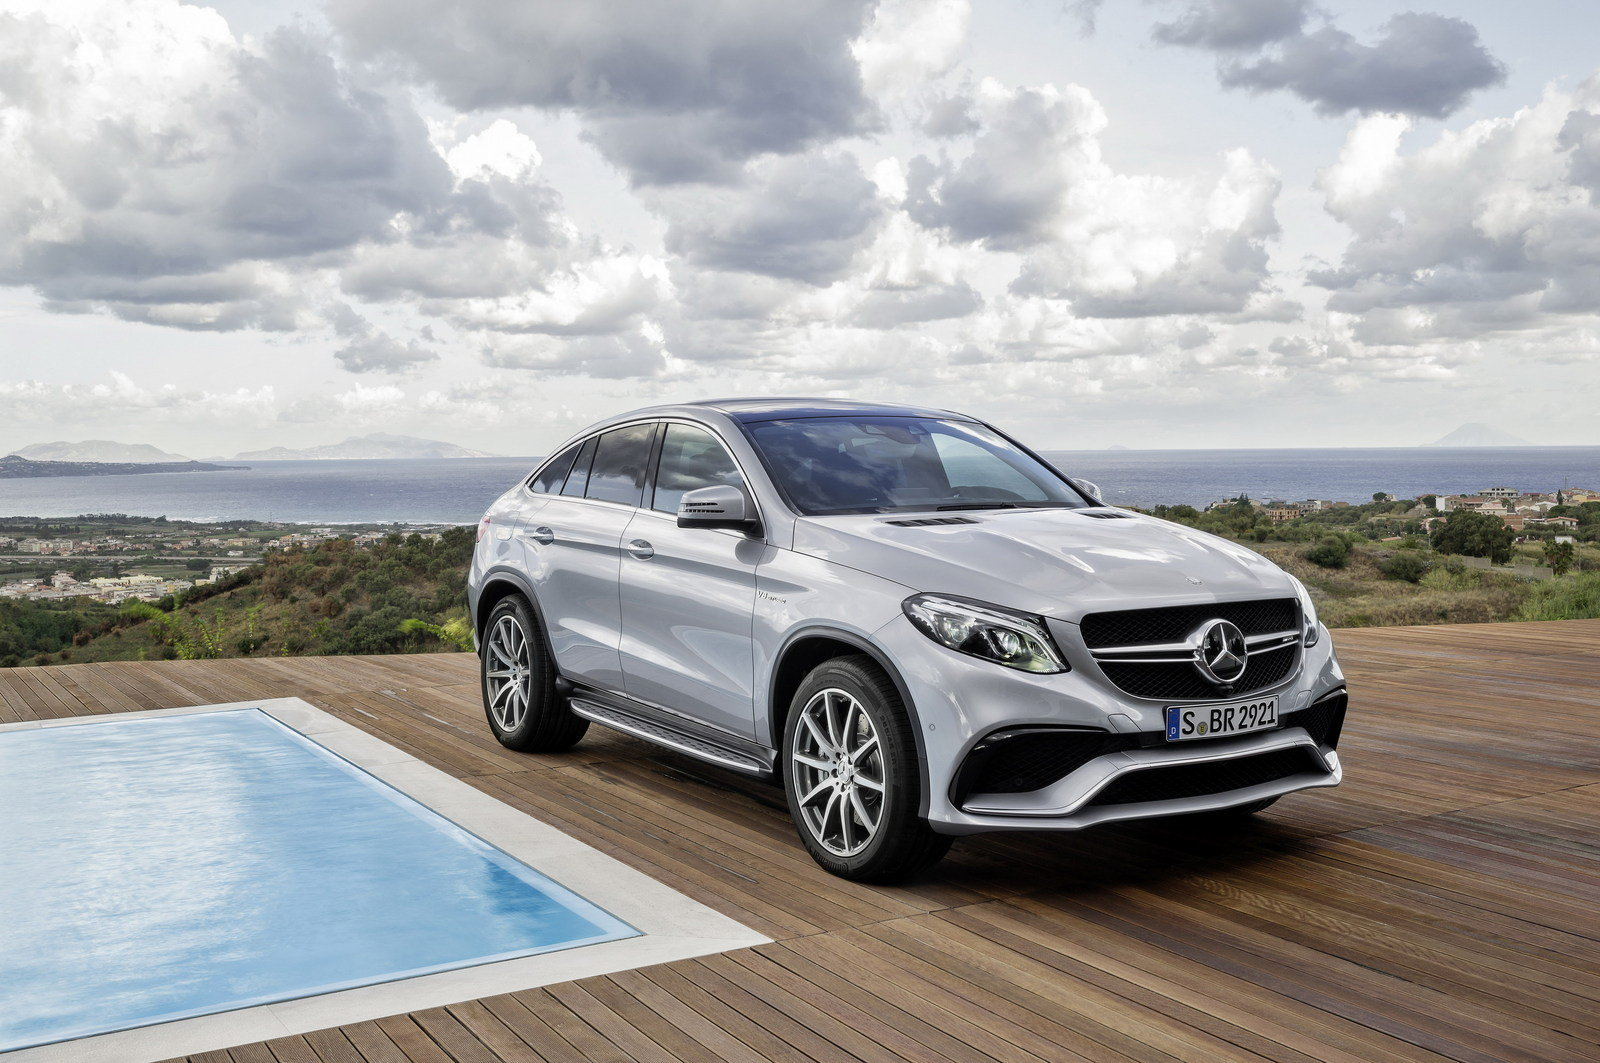 2016 mercedes benz gle63 amg coupe picture 610162 car for Mercedes benz gle63